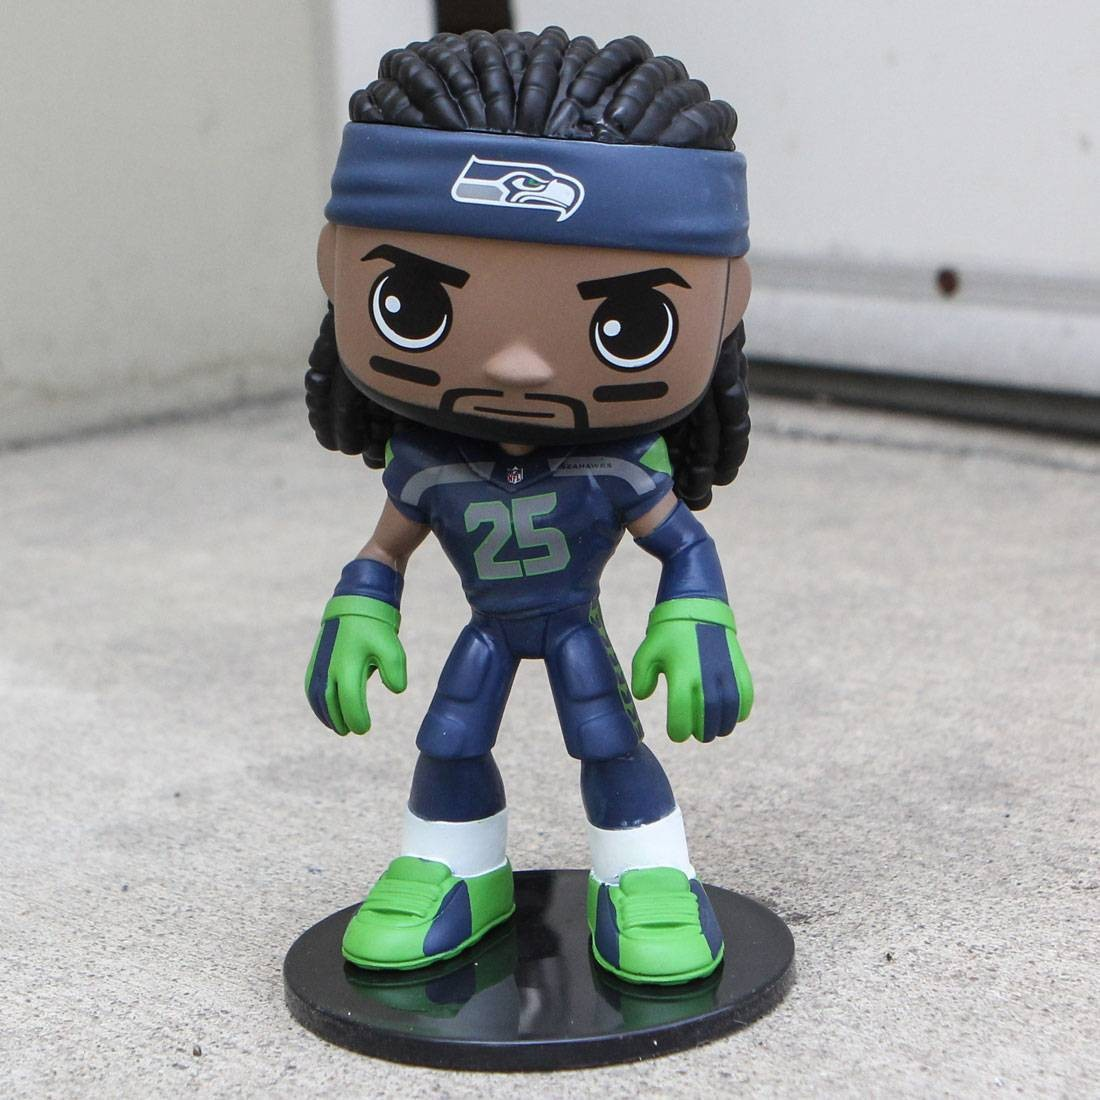 Funko Wobblers NFL Seattle Seahawks Richard Sherman Bobble Head (navy)